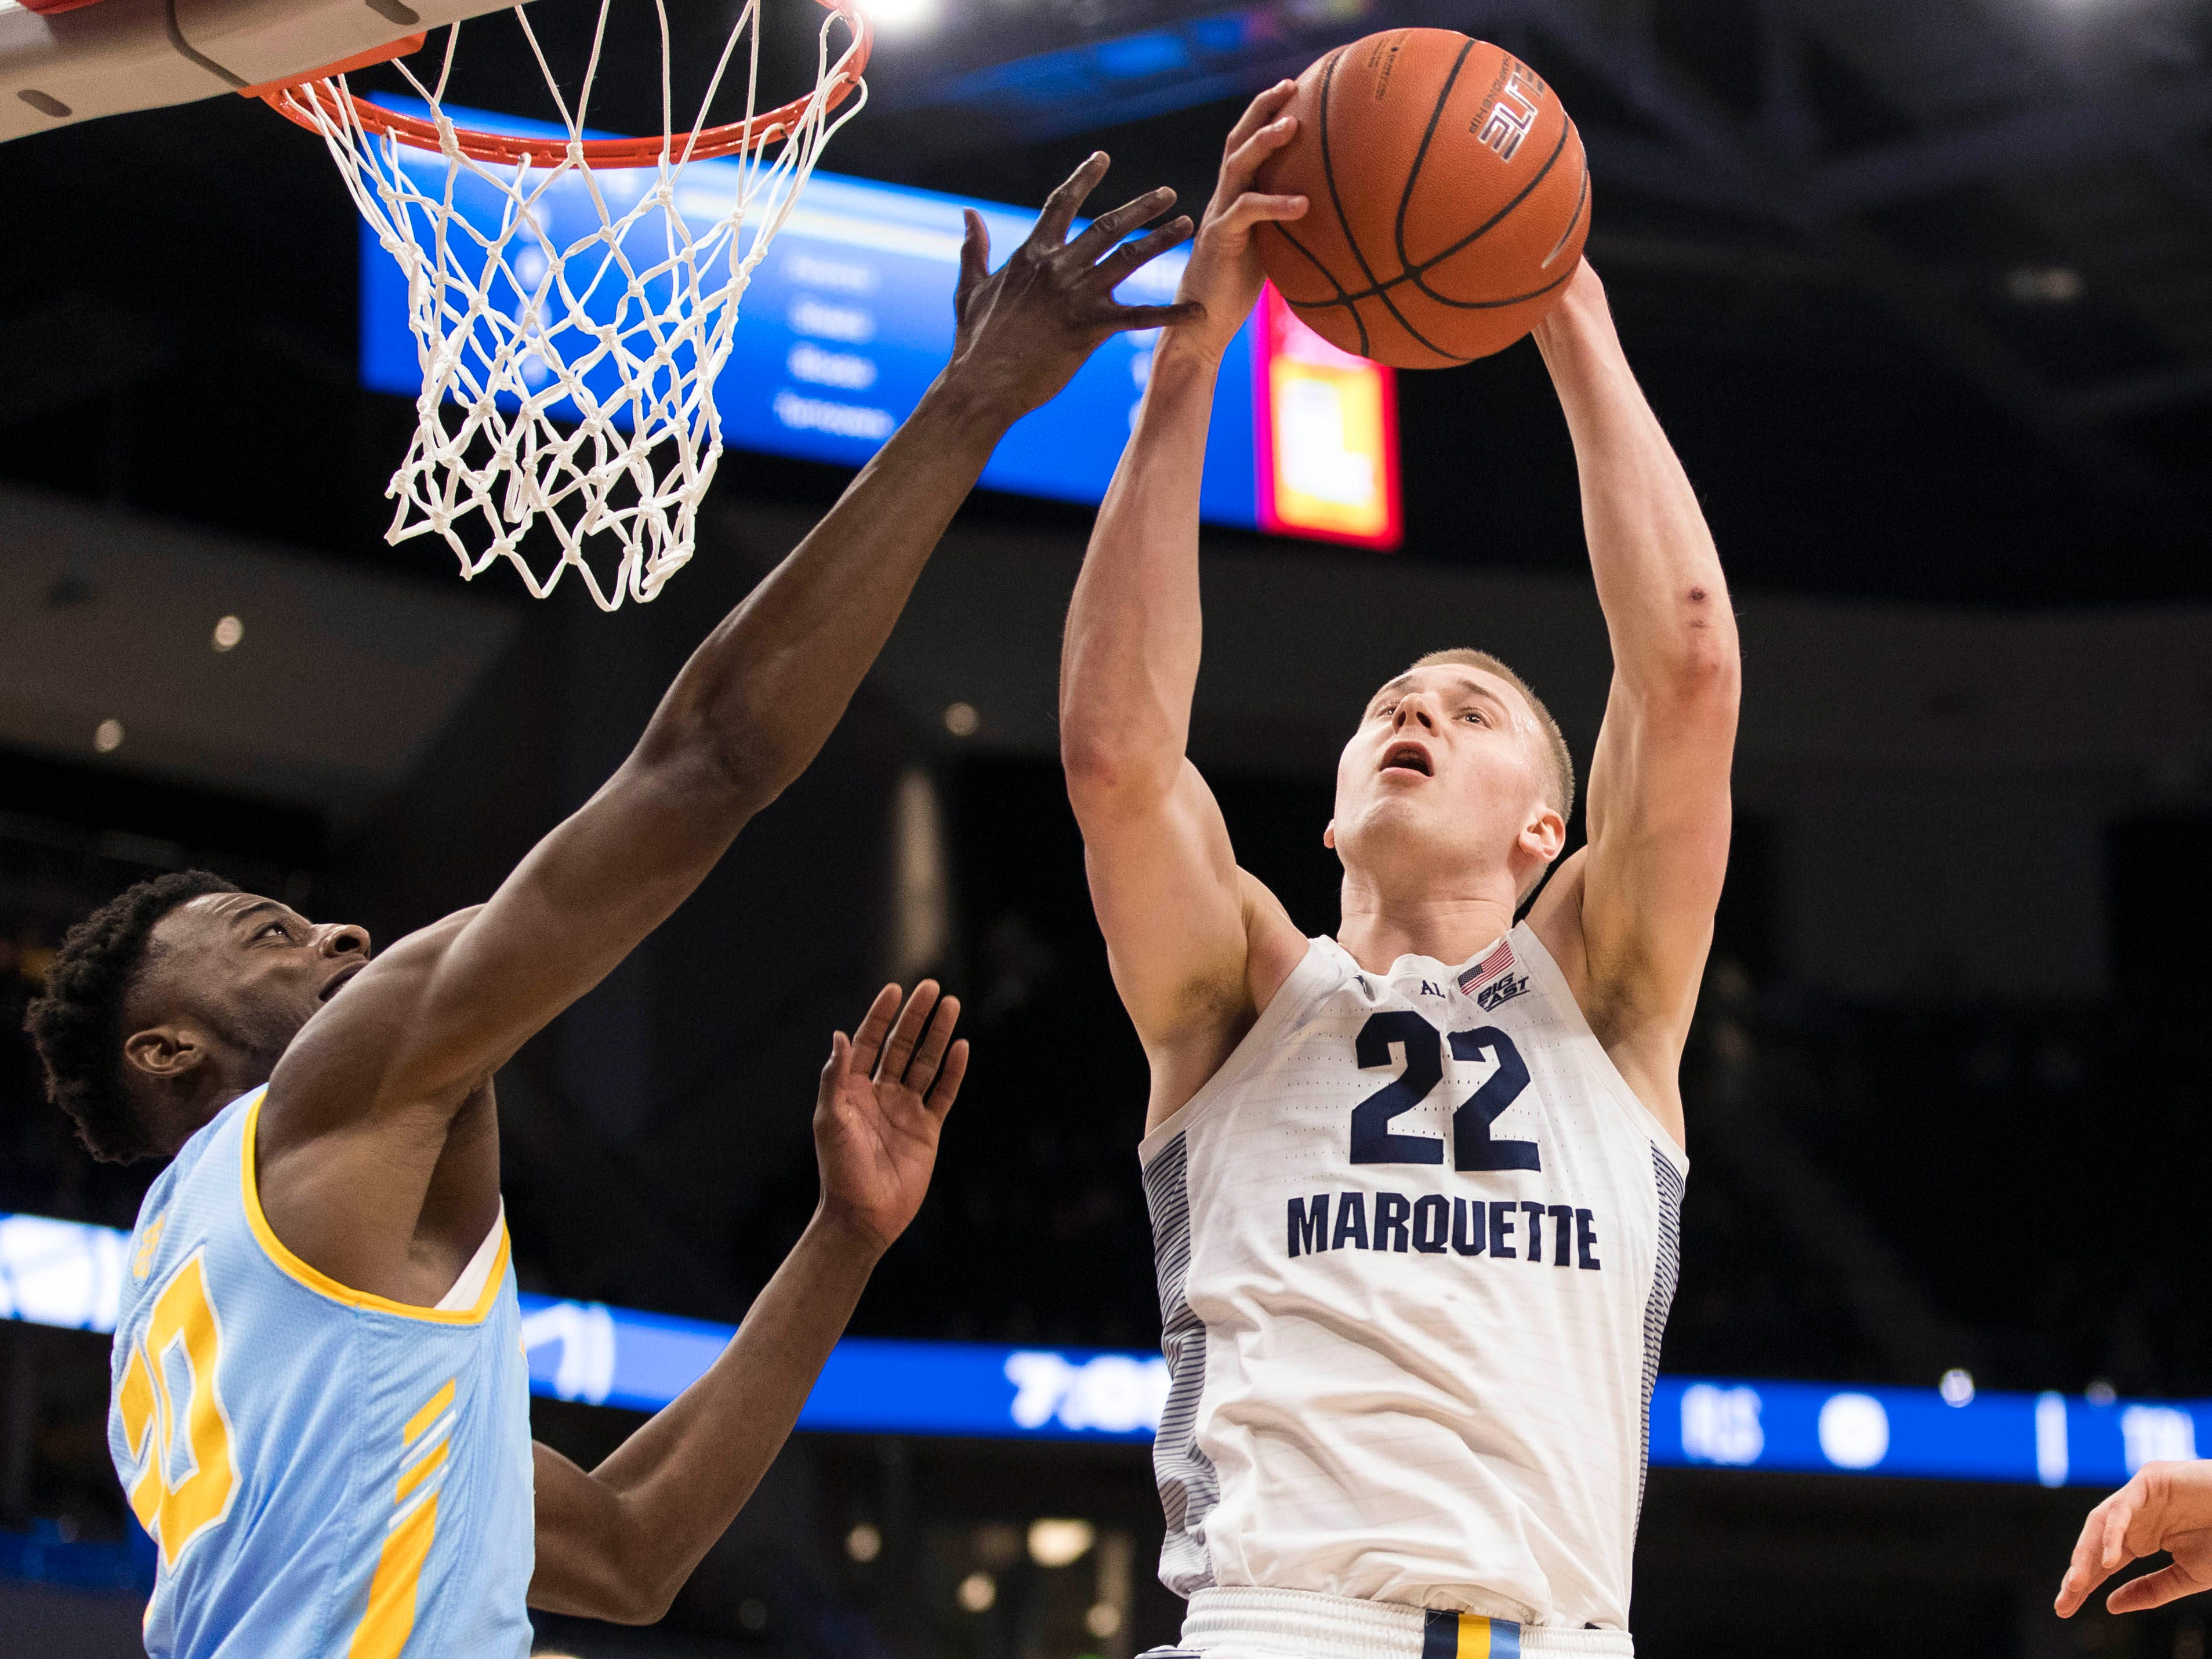 Marquette forward Joey Hauser grabs one of his nine rebounds on the night against Southern on Friday.